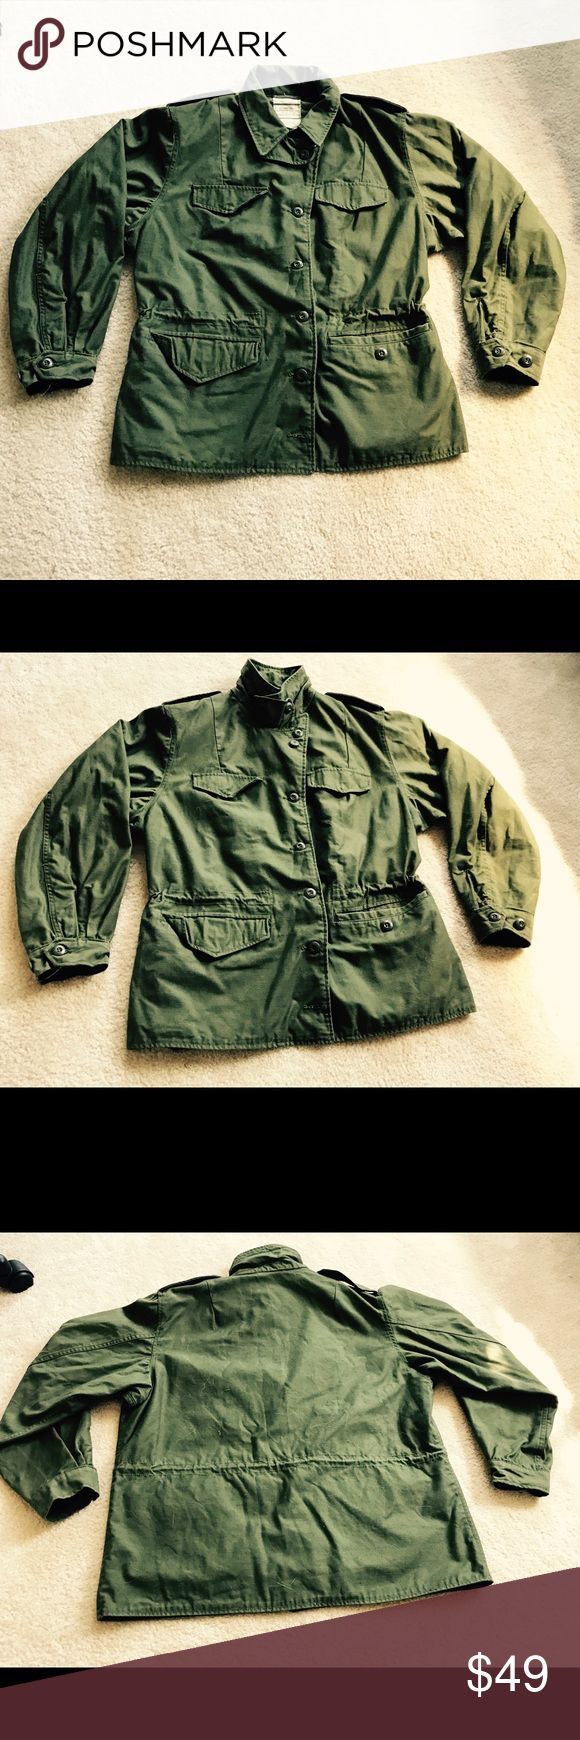 Greenbrier Military Issue Field Coat 18R Olive You can't find a more authentic military style jacket than this! This field coat was issued to female soldiers in 1978, and is in excellent condition! There are three different ways to button the collar as you can see from the pictures, and the styling options are endless! Reasonable offers will be considered, and please bundle for a deal! Greenfield Industries Jackets & Coats Utility Jackets